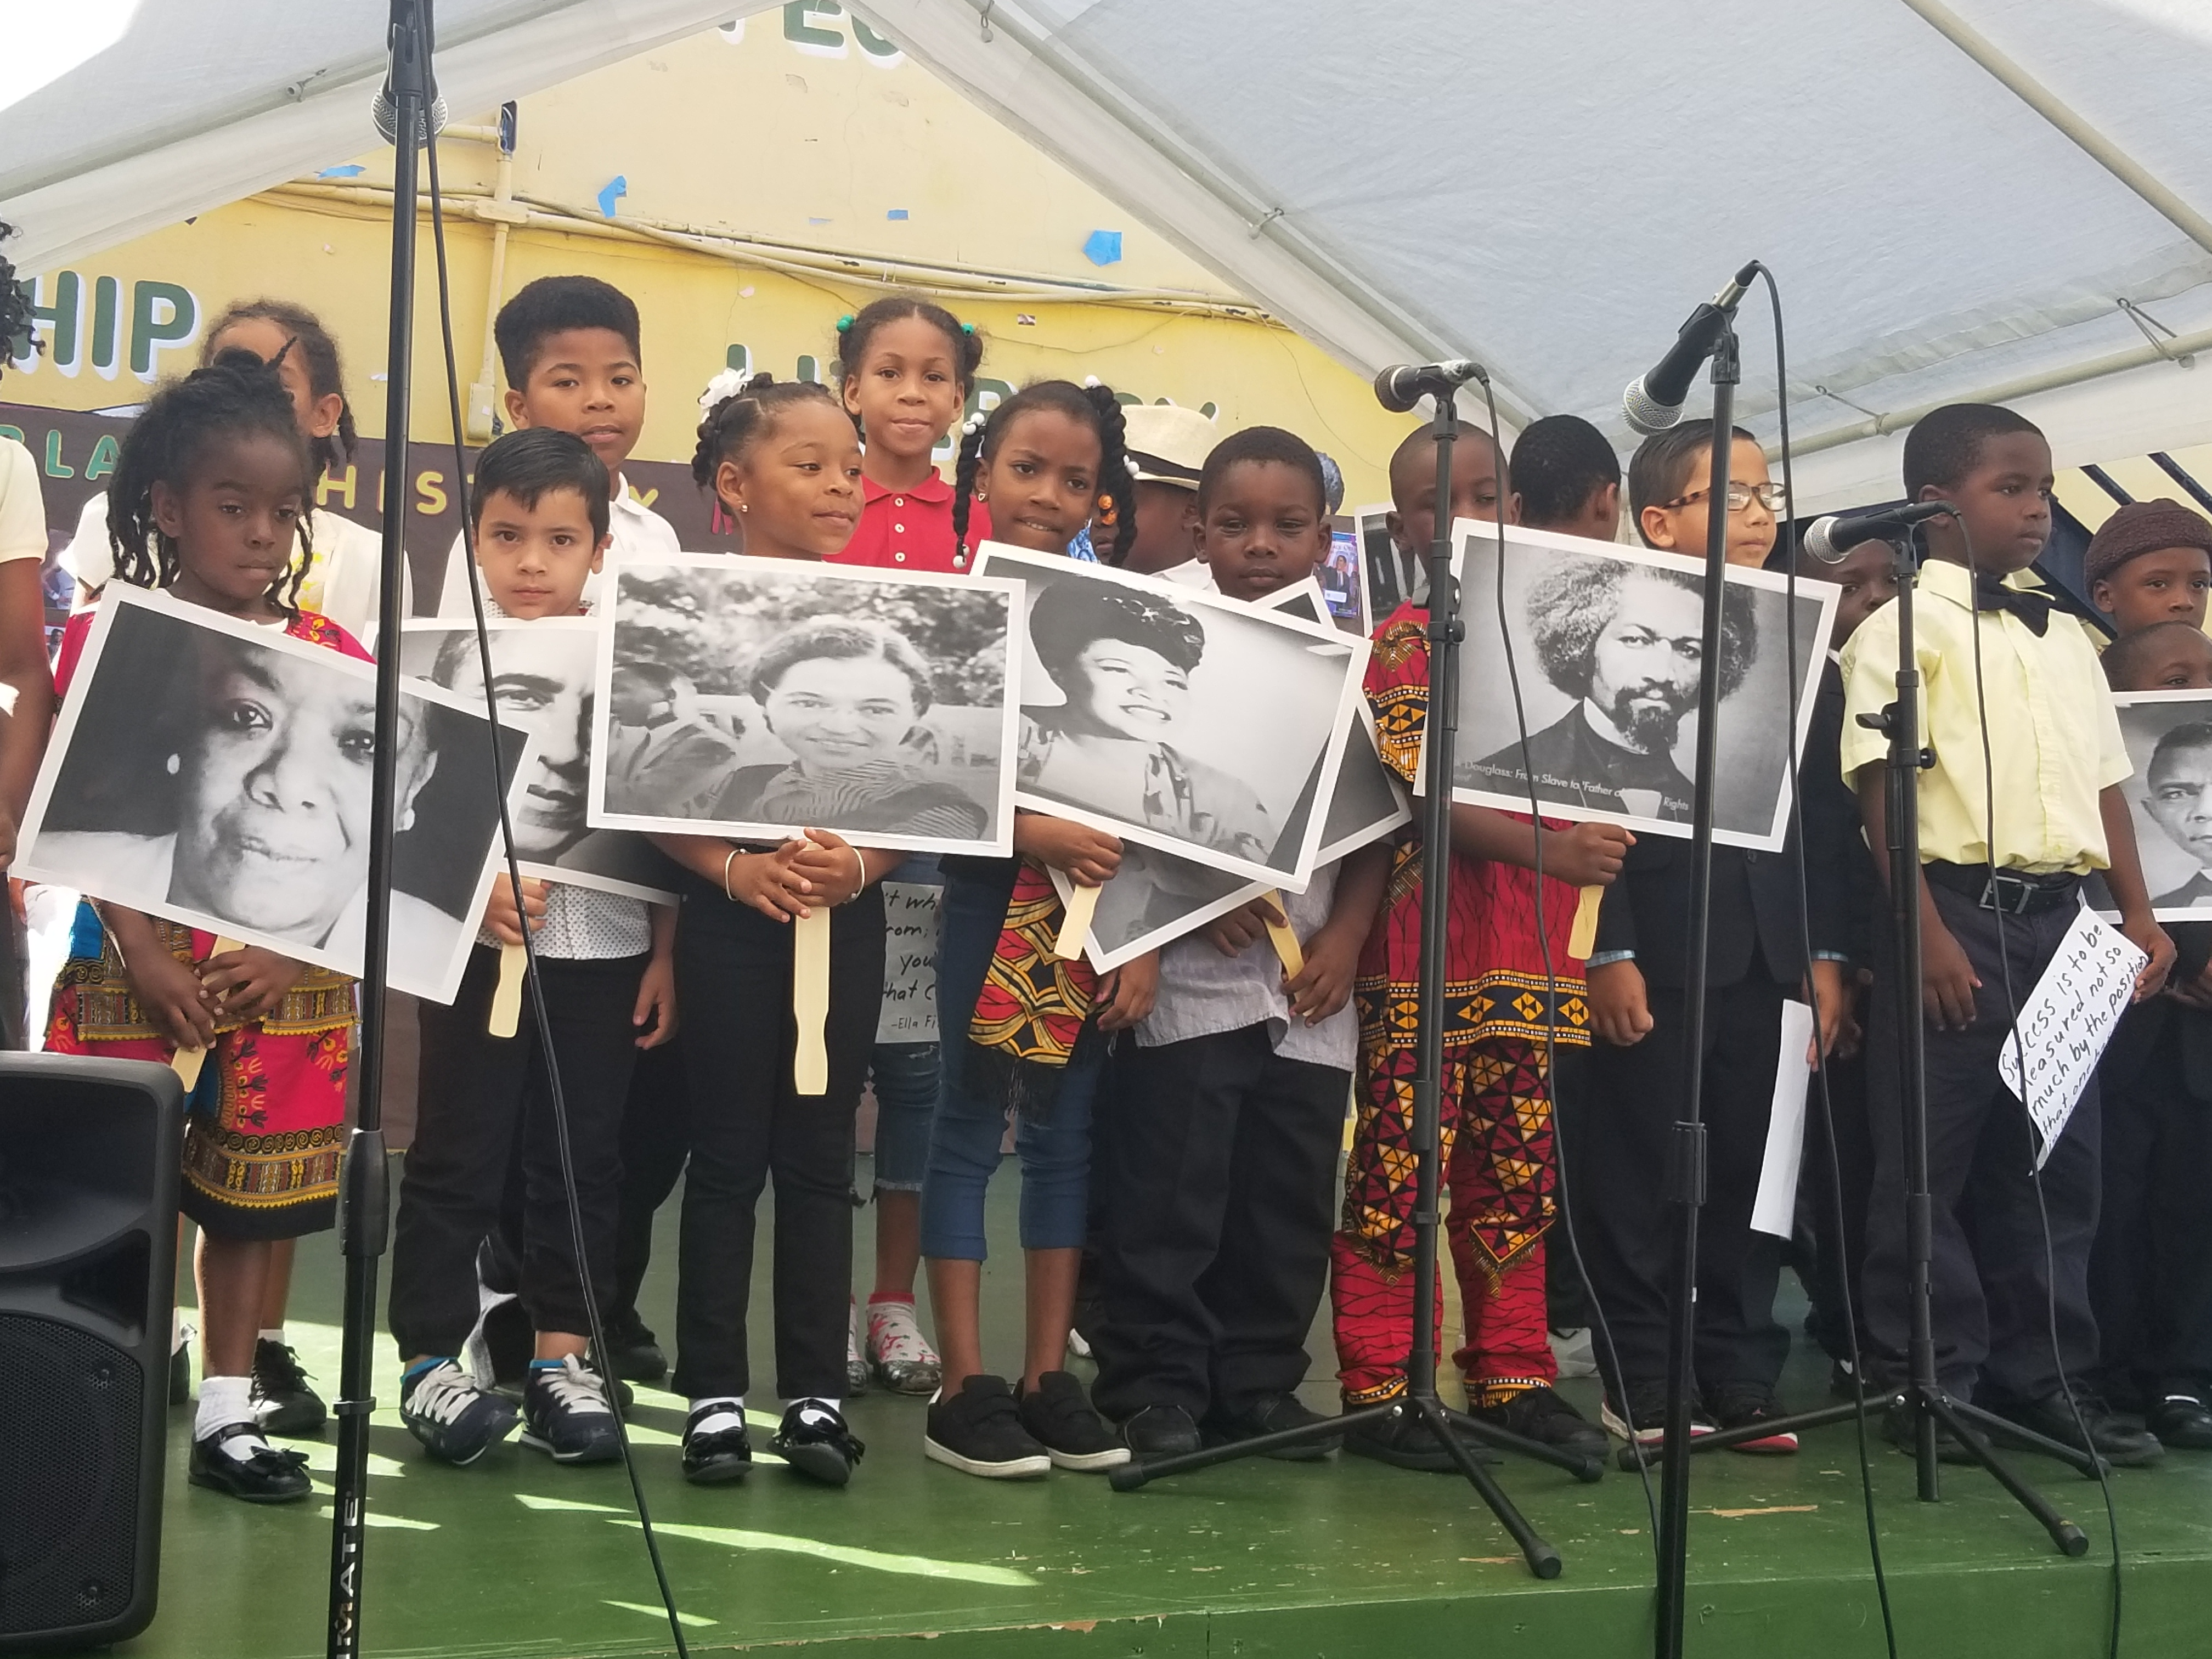 Tuitt Primary School Celebrates Black History Month with Special Assembly - Photo Highlights